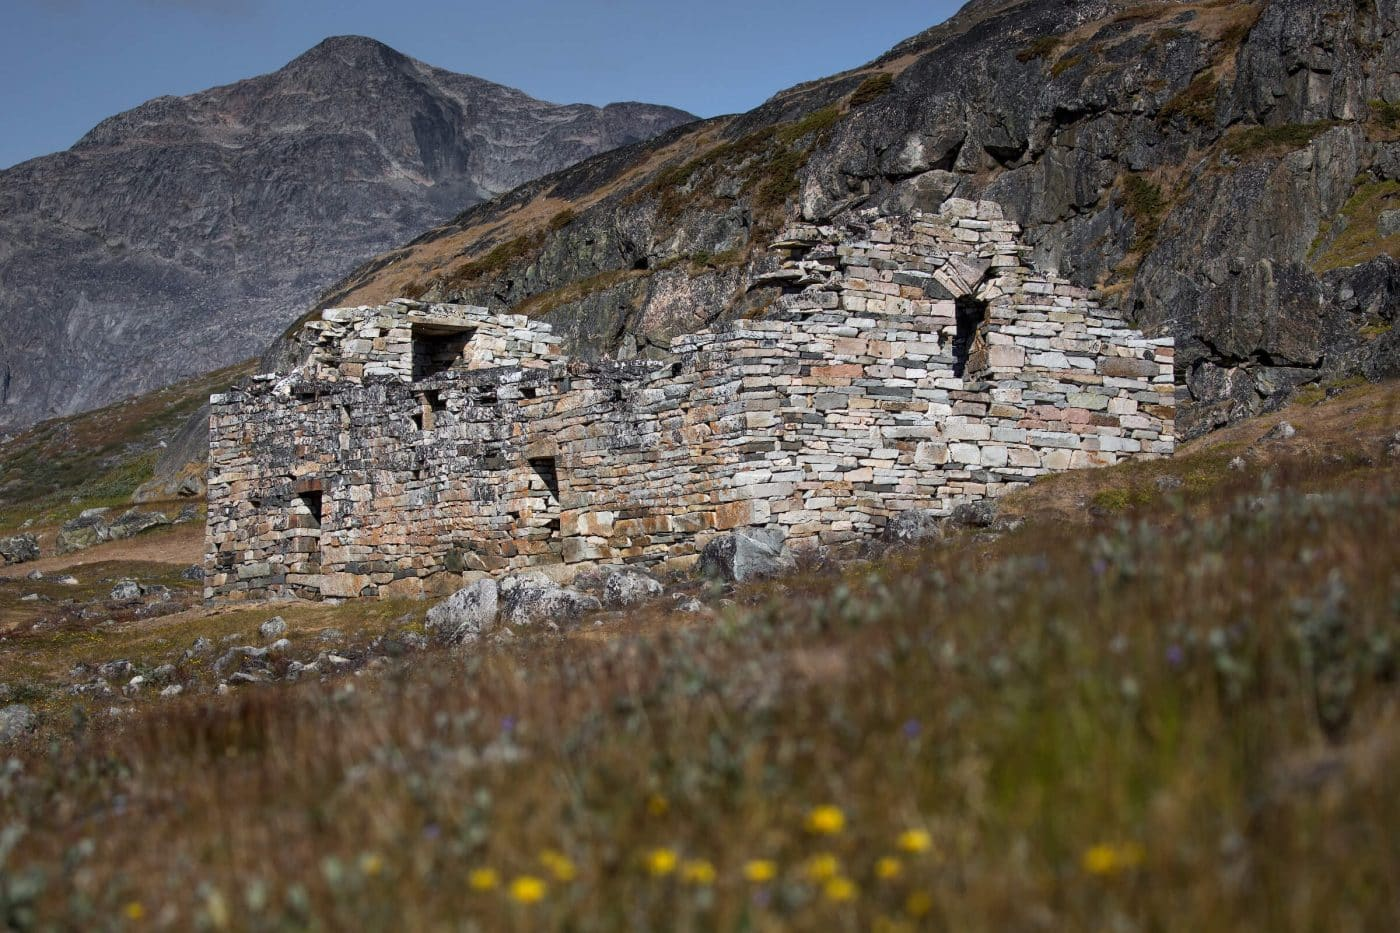 The Hvalsey church ruin near Qaqortoq in South Greenland. By Mads Pihl